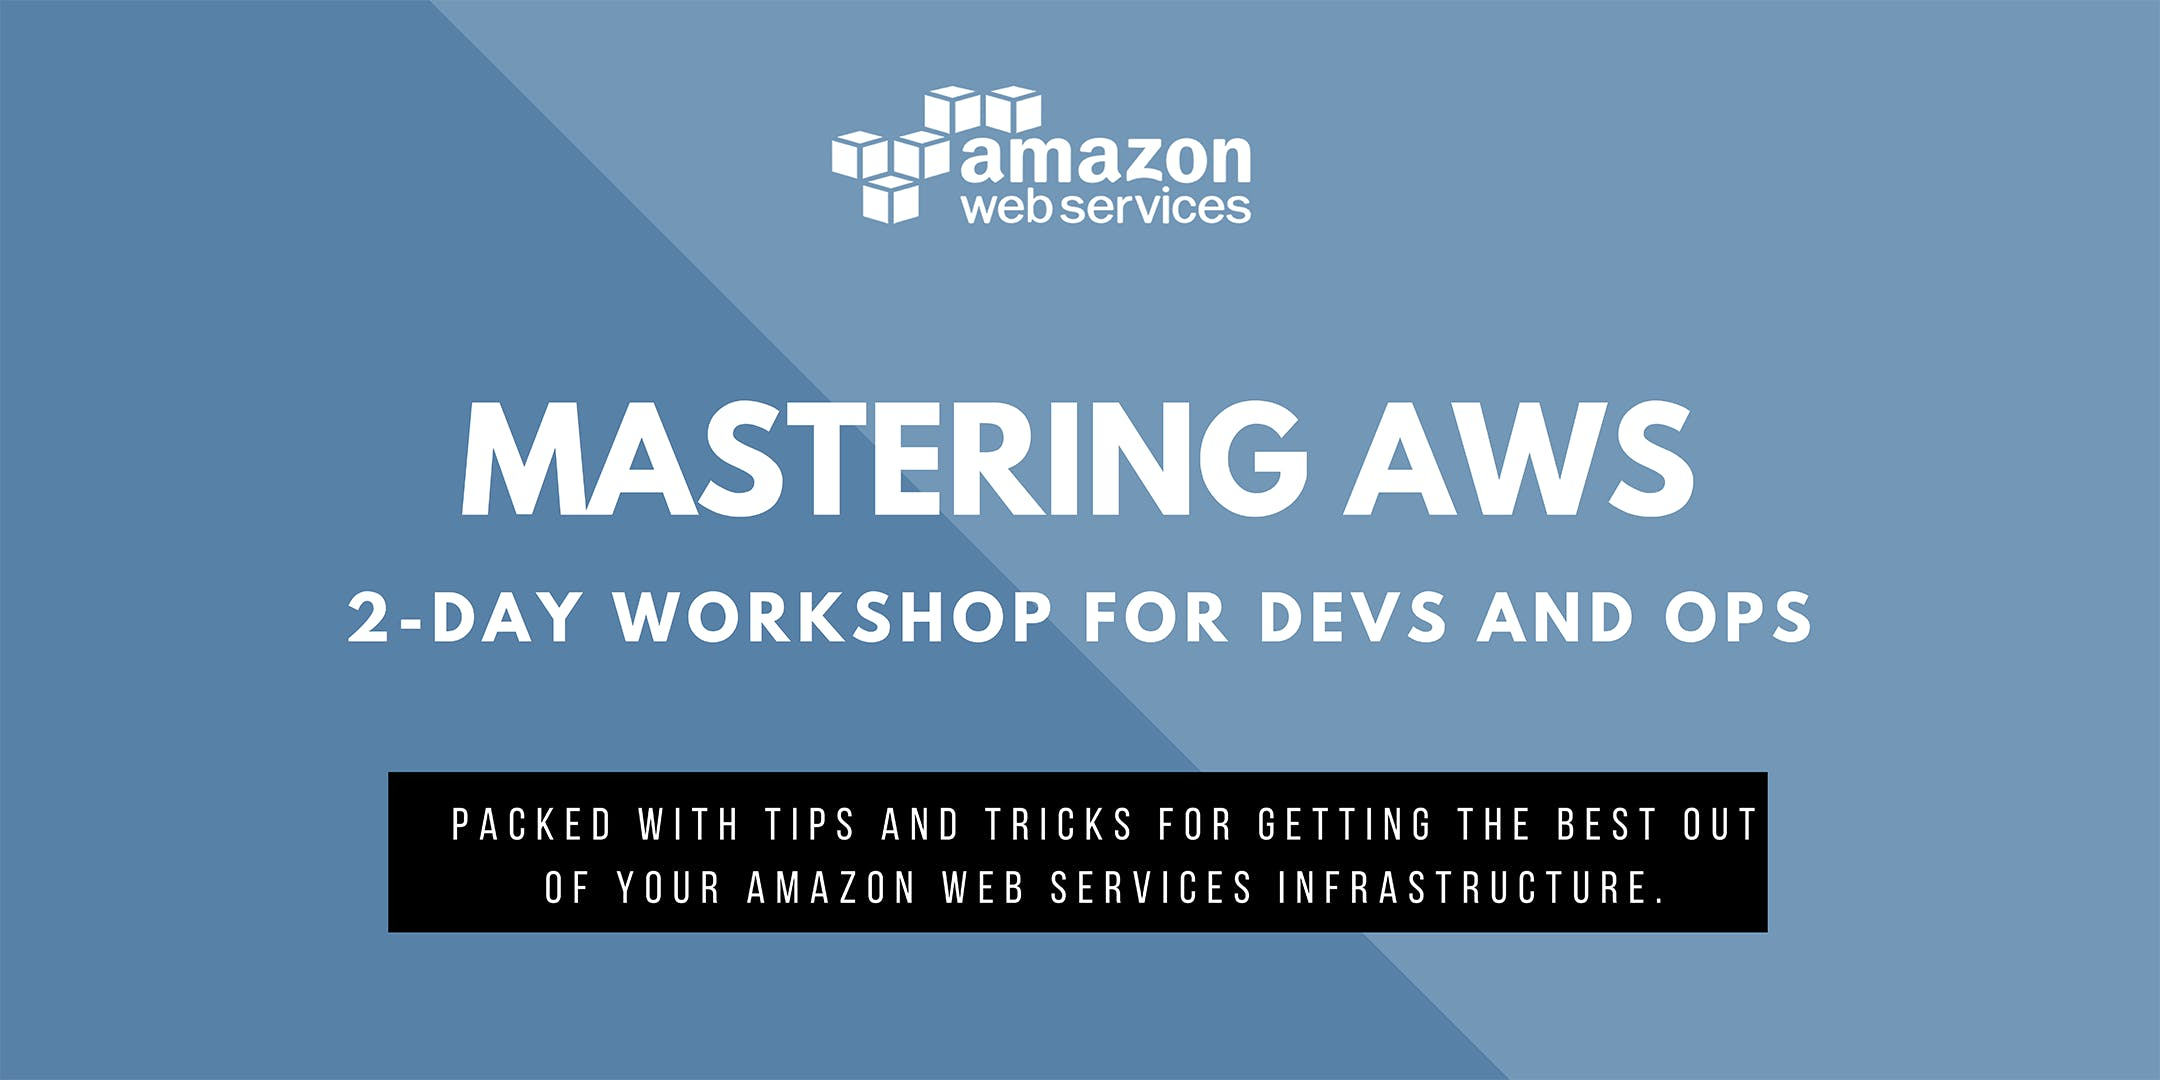 TOP Mastering Amazon Web Services (Cork)